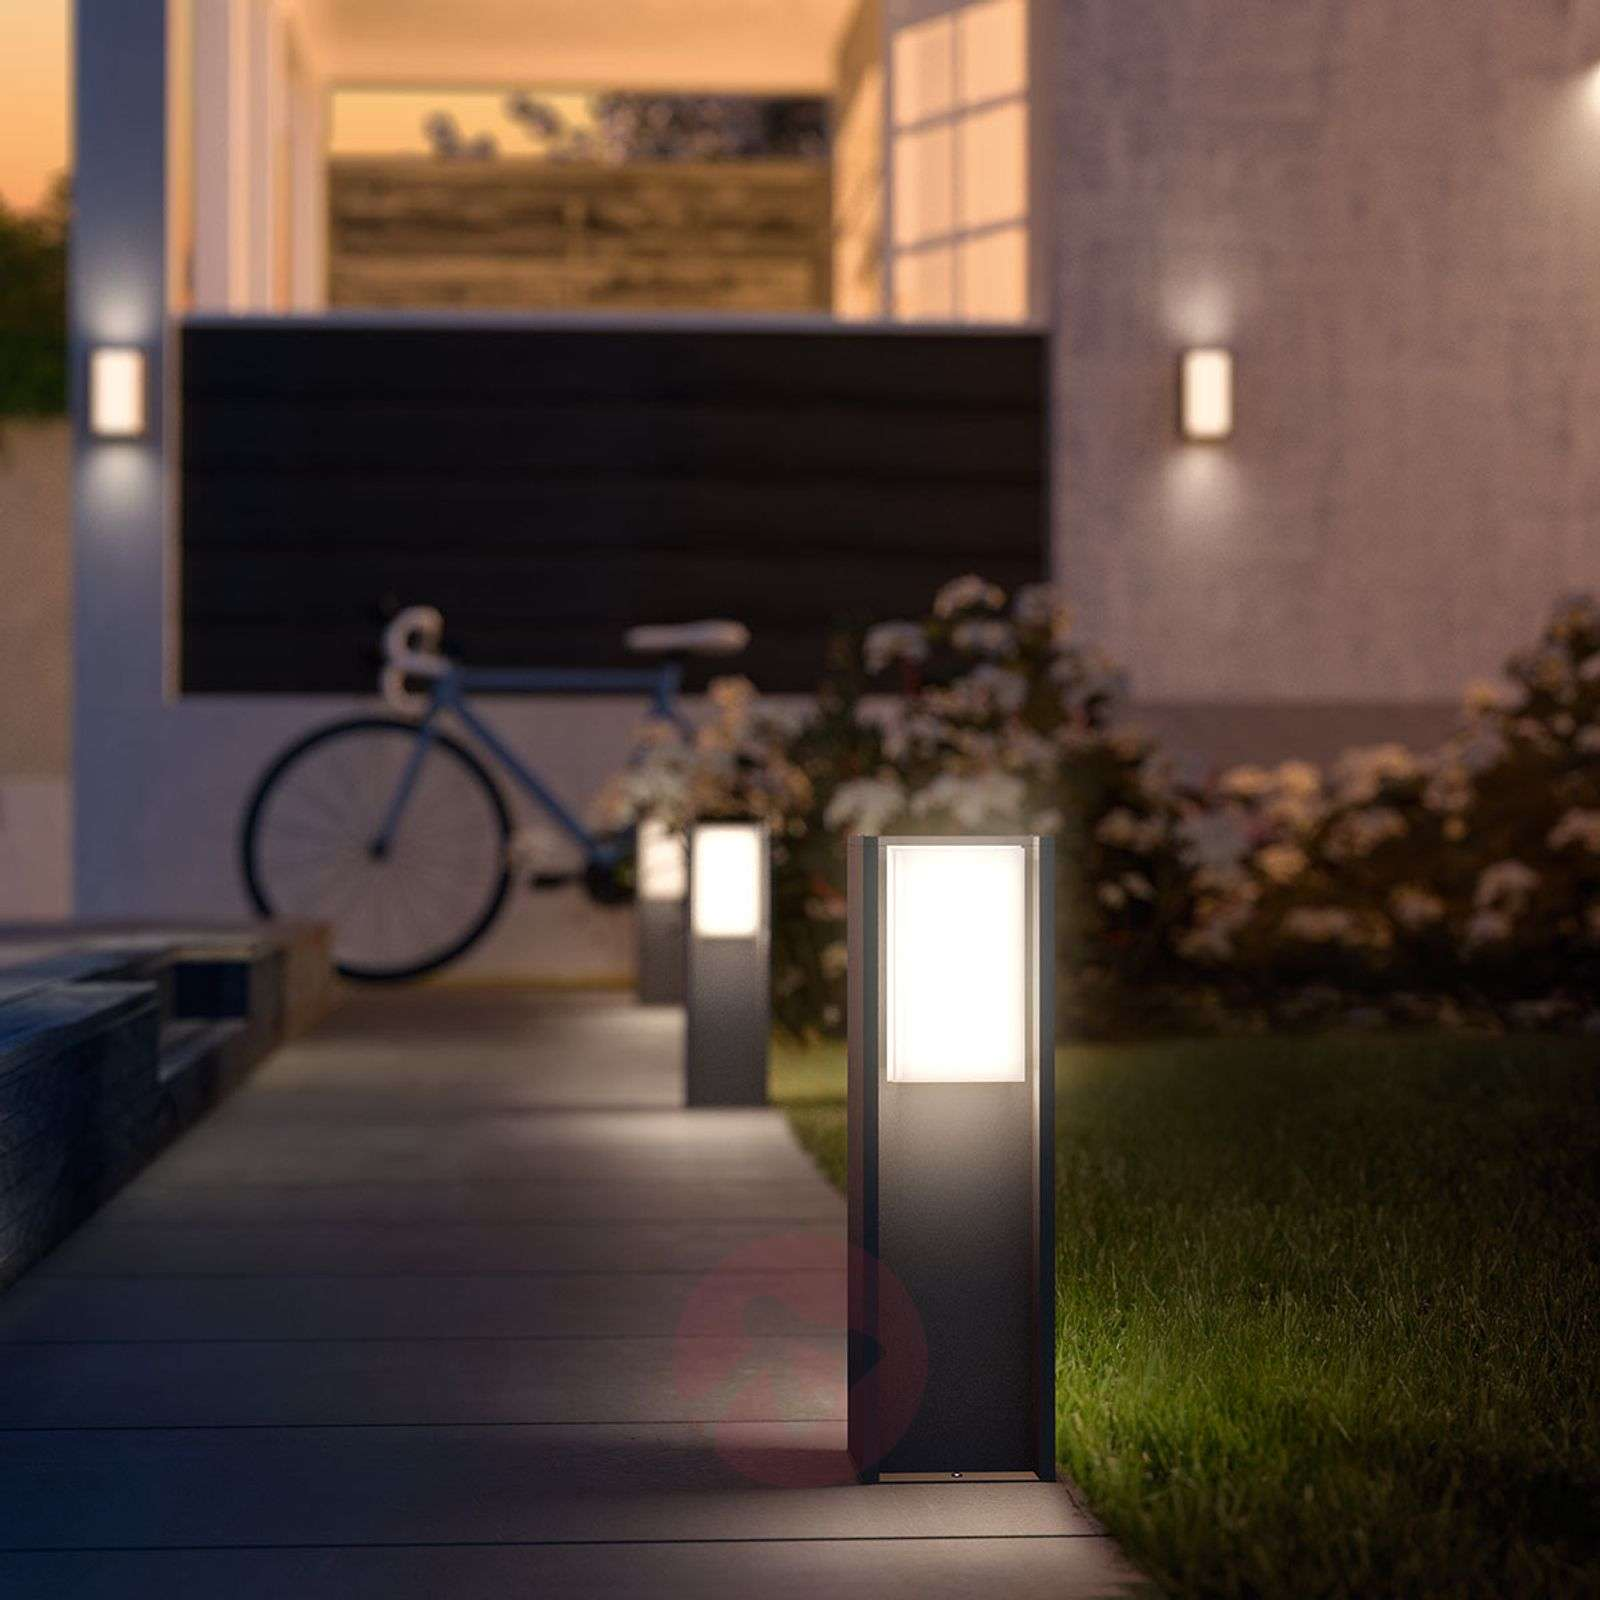 Philips Hue Turaco LED pillar light controllable-7534046-01